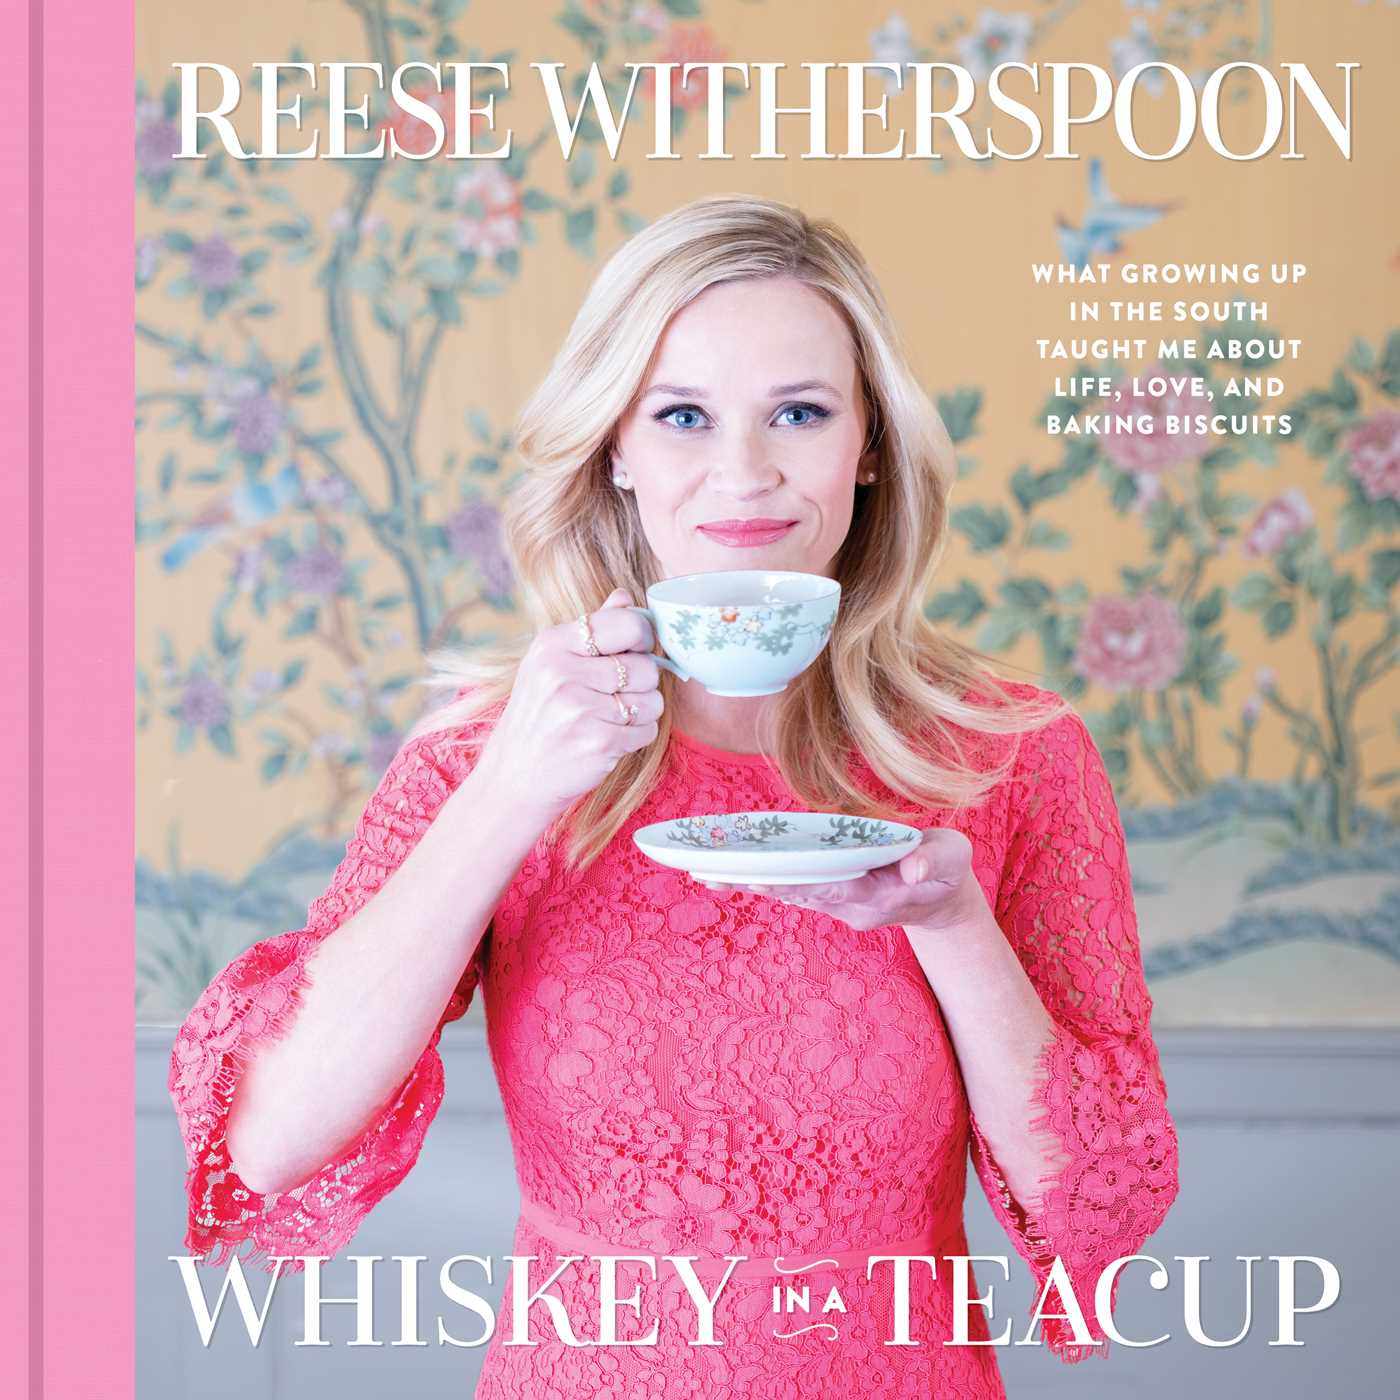 Whiskey in a teacup 9781471166235 hr